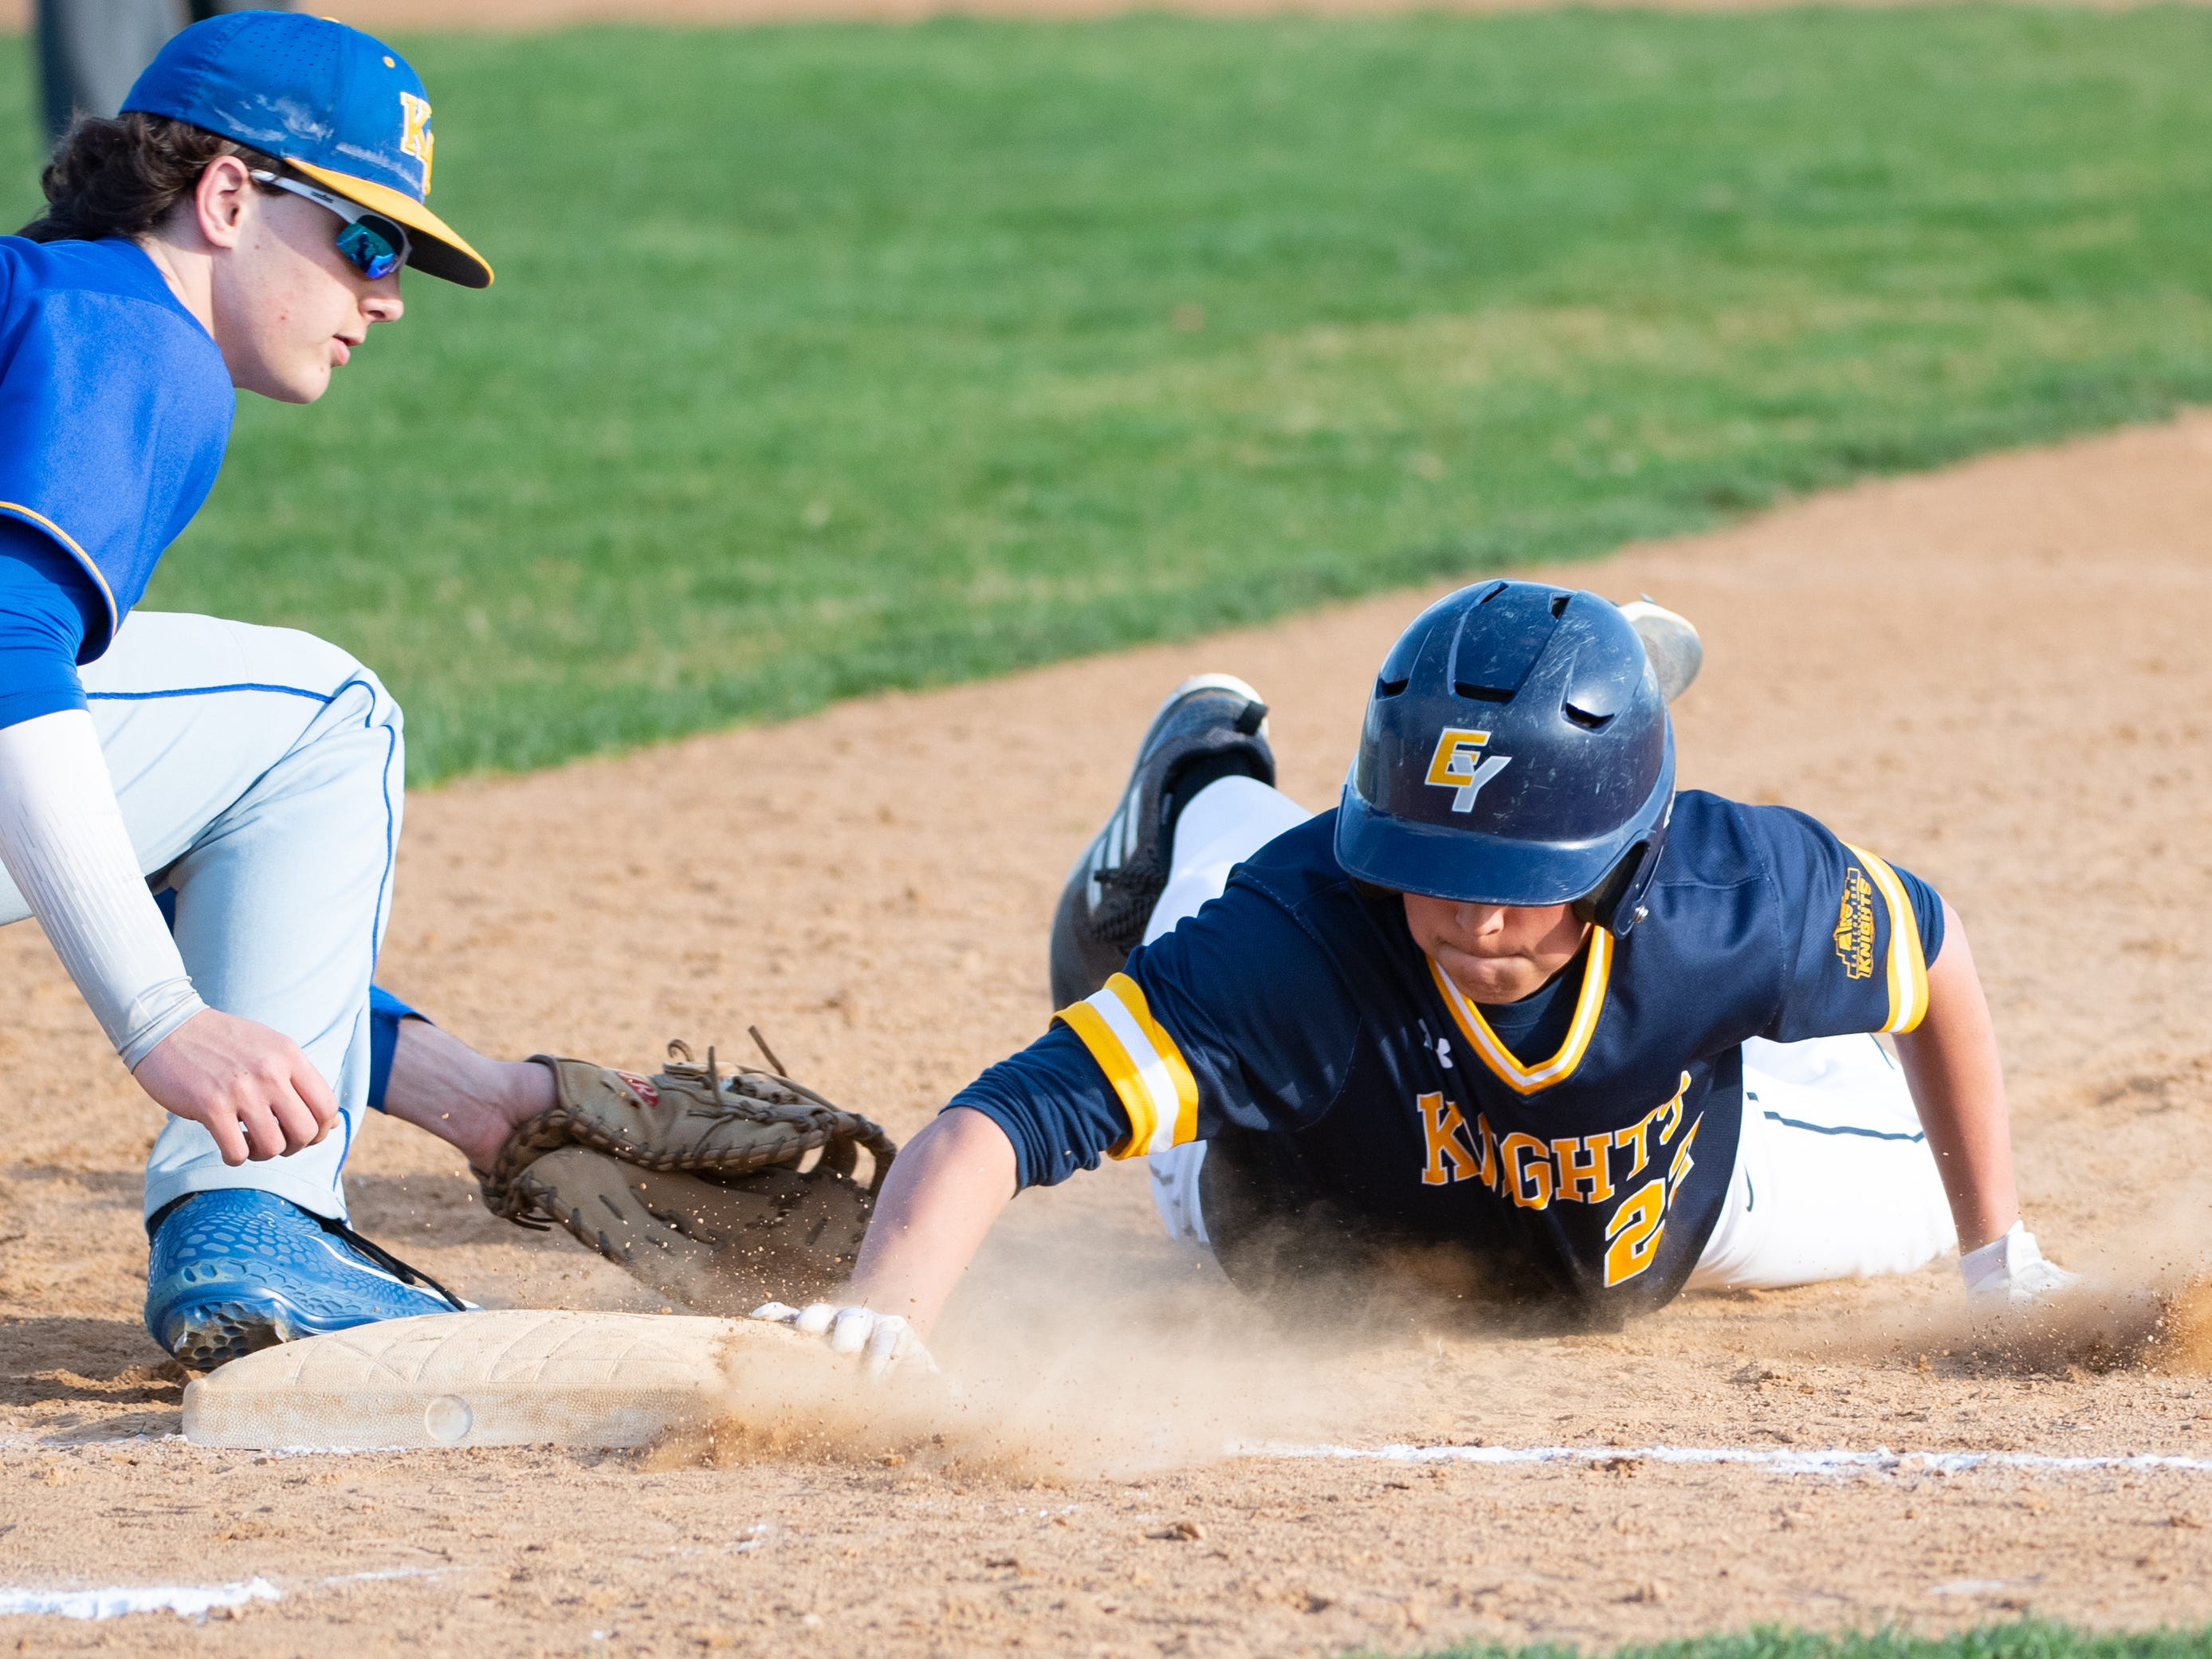 Justin Ranker (22) slides to first base during the baseball game between Eastern York and Kennard-Dale, April 10, 2019 at Eastern York High School. The Golden Knights defeated the Rams 8 to 1.